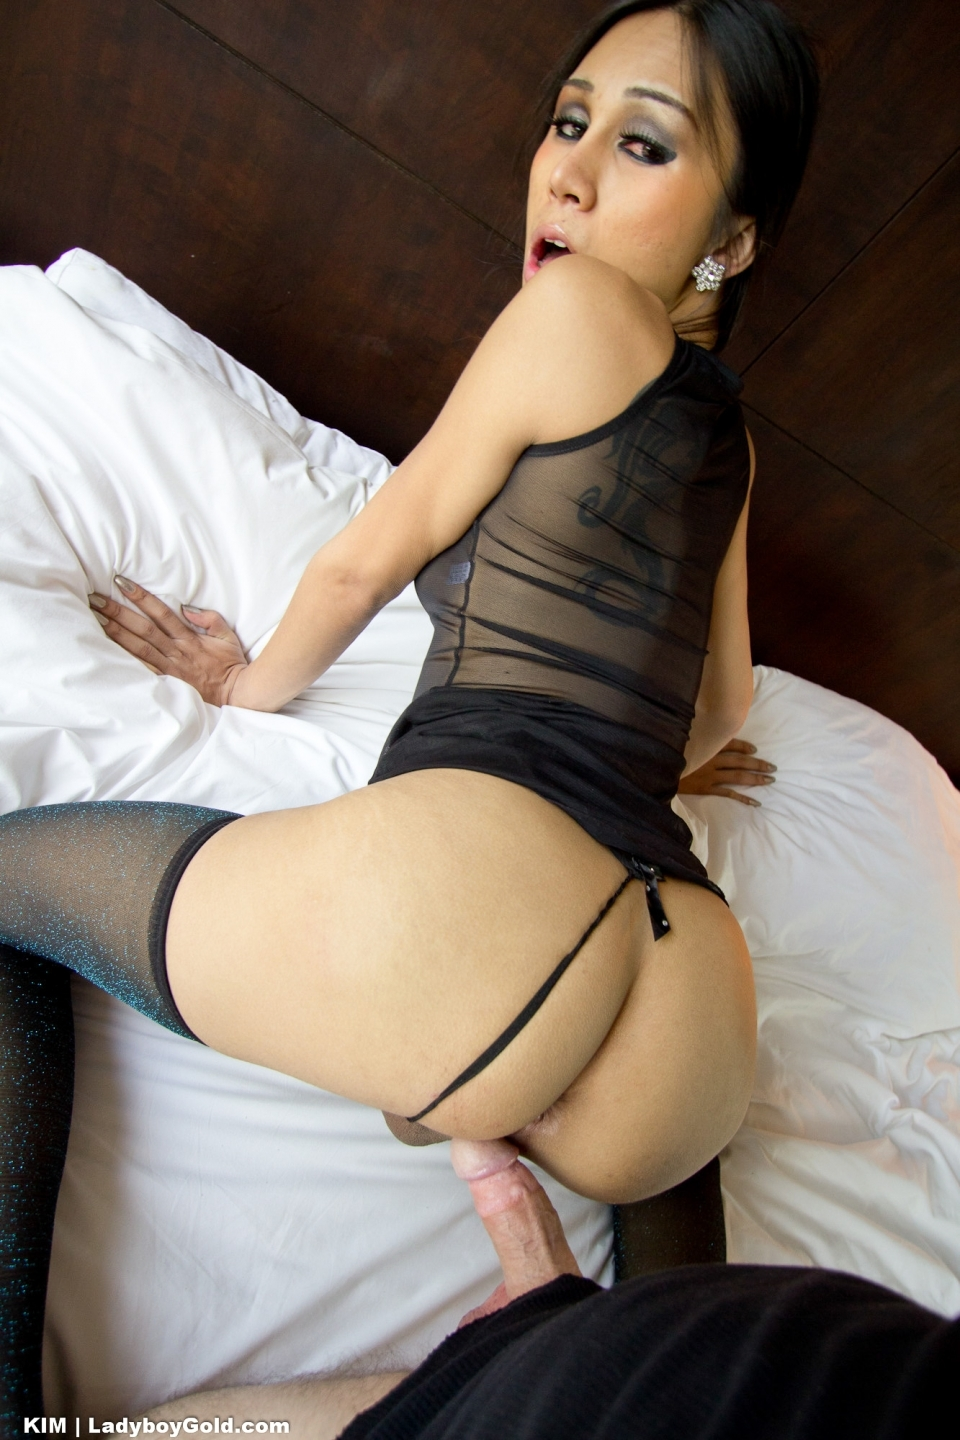 Kim Gives A Arousing Rimjob Blowjob And Has Her Gaping Butt Filled